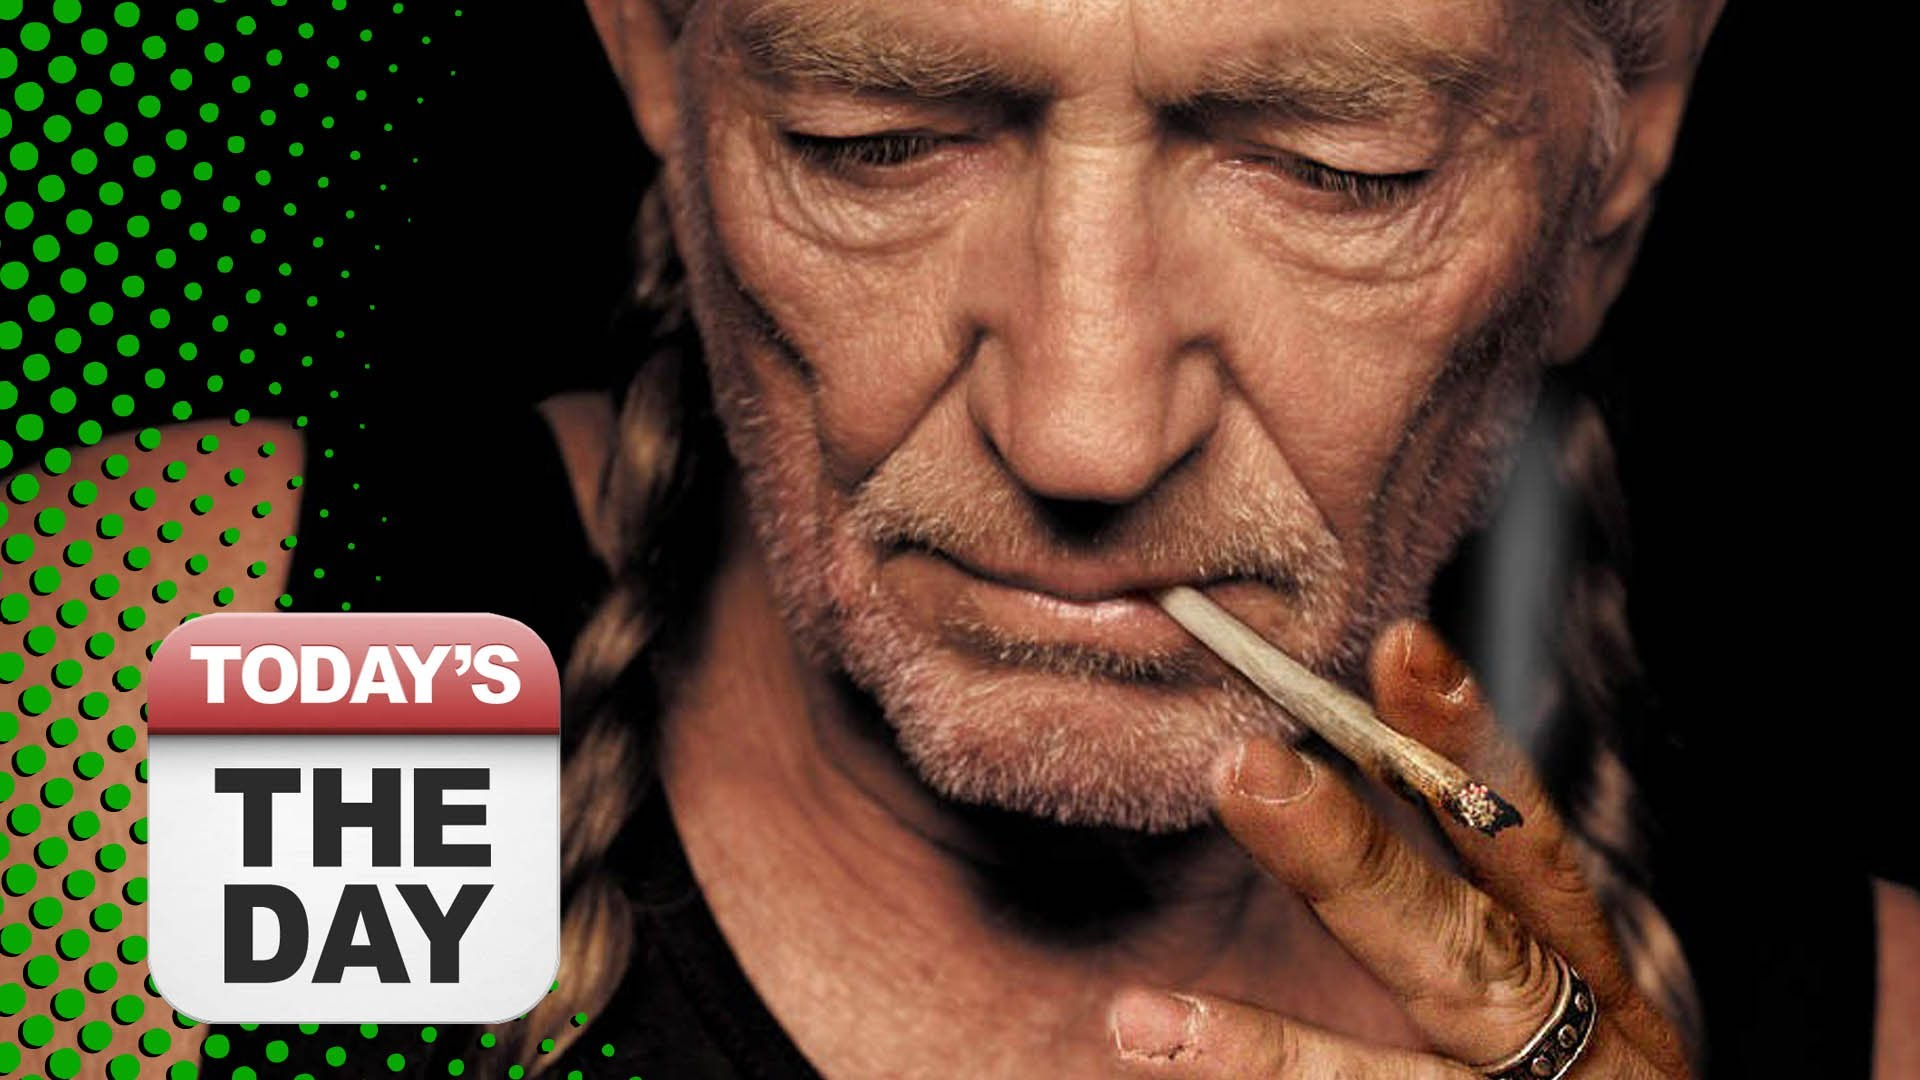 Music legend Willie Nelson, now 81, plans to launch his own signature brand of marijuana called Willie's Reserve.